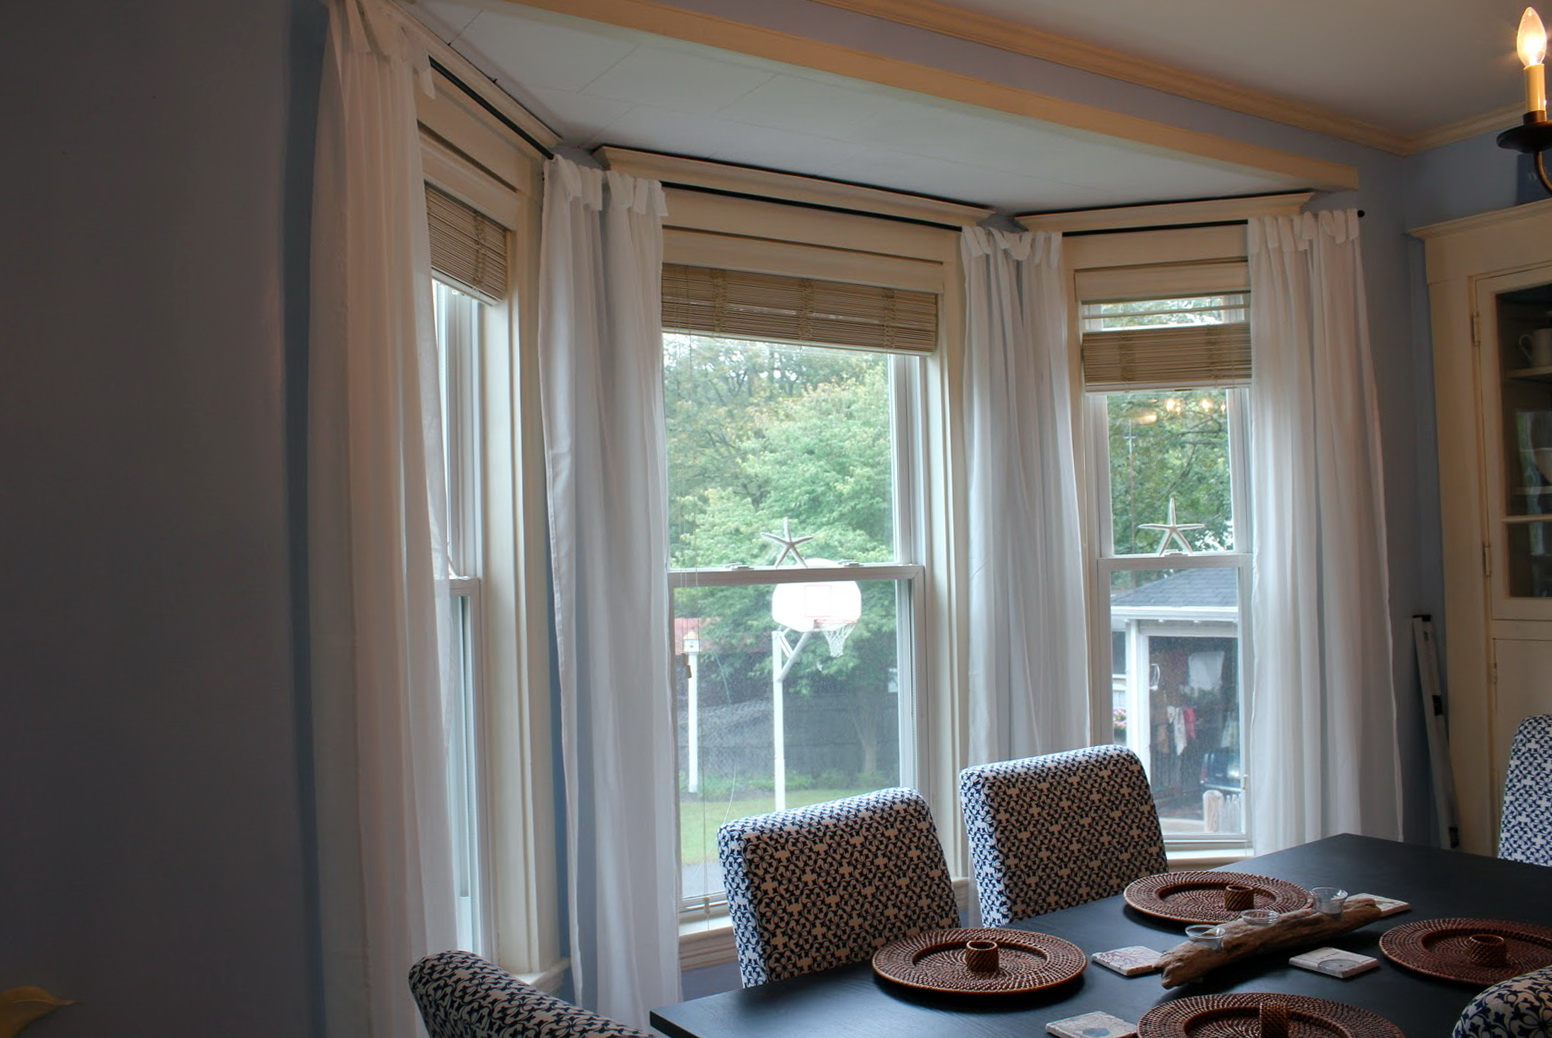 Curtain Rod For Bay Window Canada Home Design Ideas